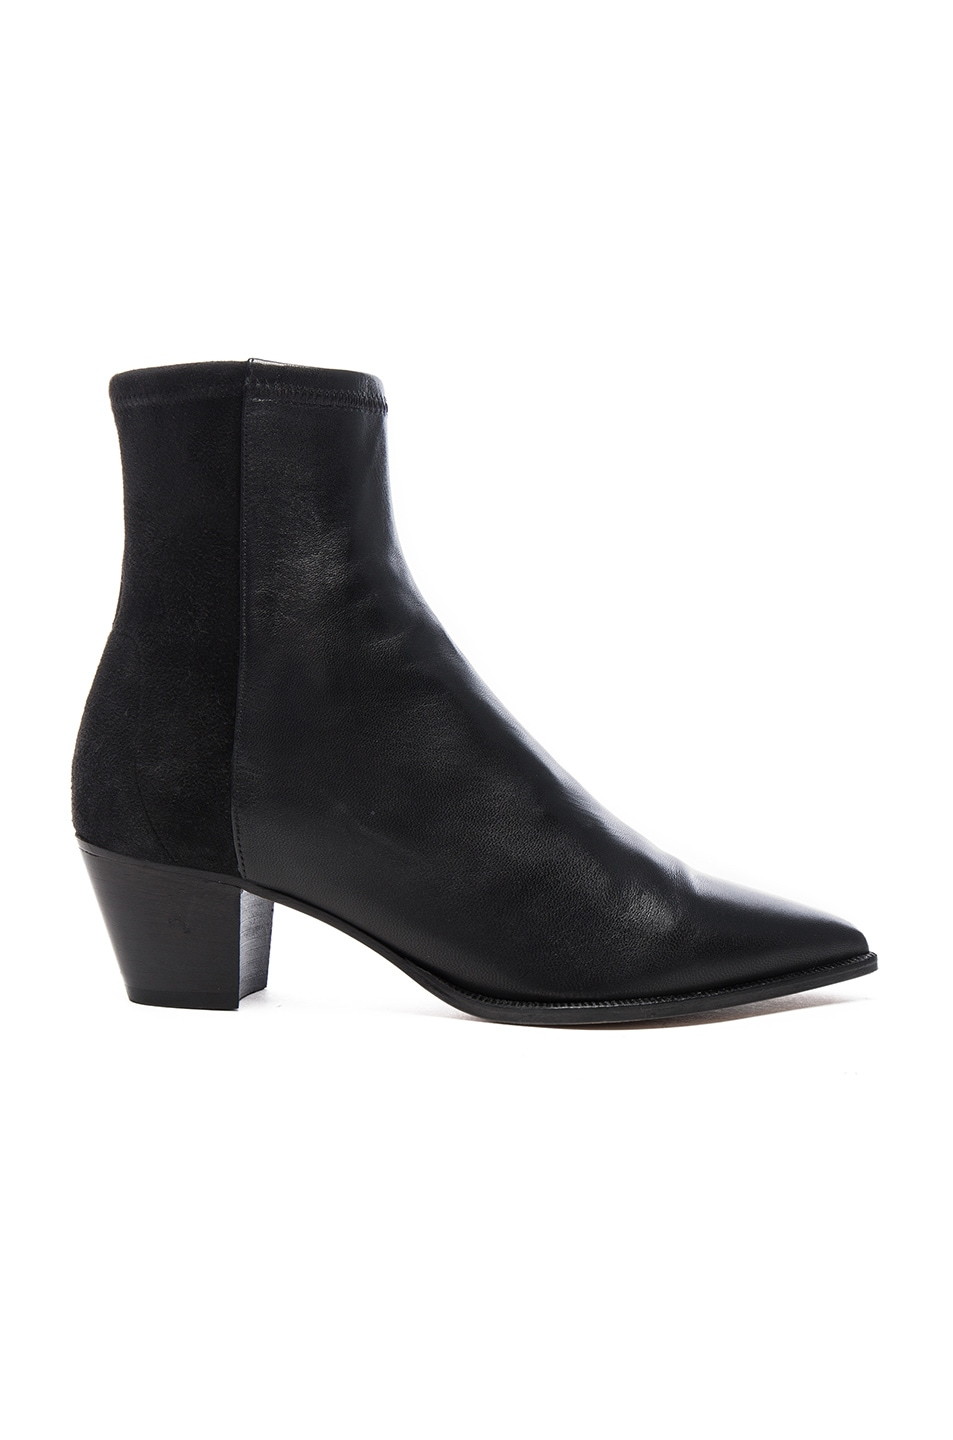 Image 1 of Isabel Marant Dabbs Velvet & Leather Boots in Black